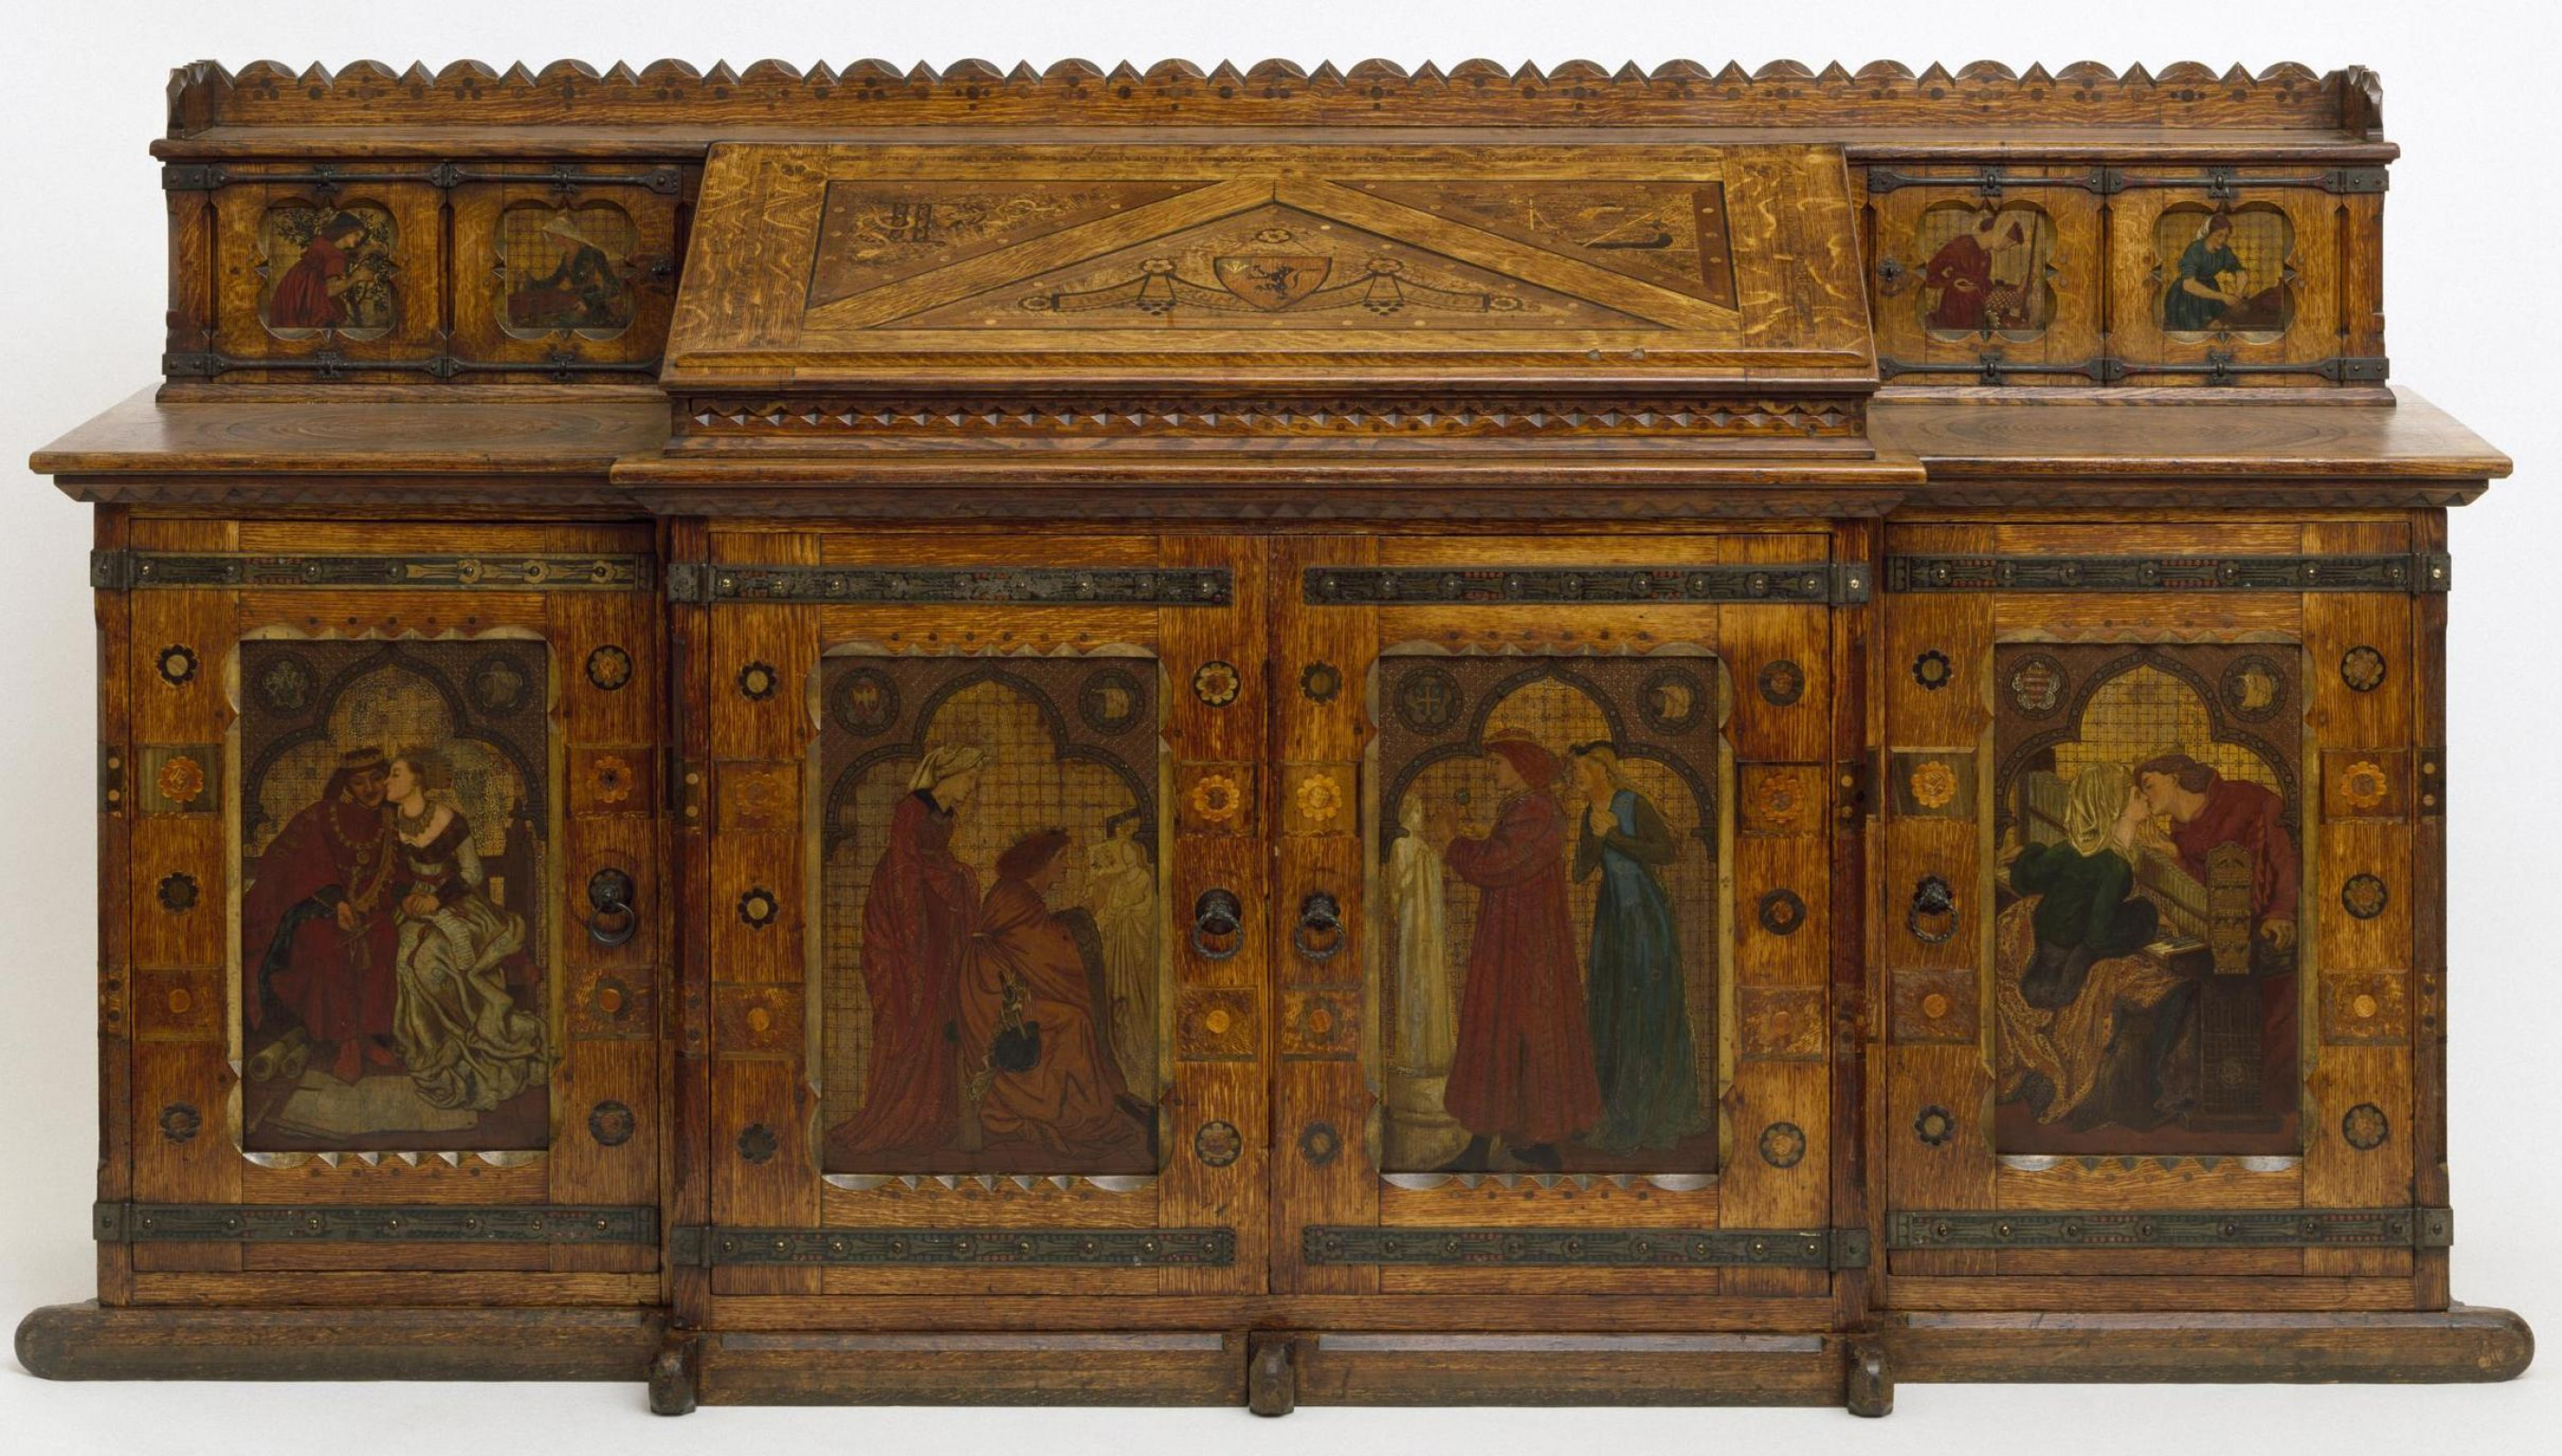 William Morris.  Le roi Lune de miel du Cabinet, René (co-auteur de Ford Madox Brown, Dante Gabriel Rossetti et Edward Burne-Jones)